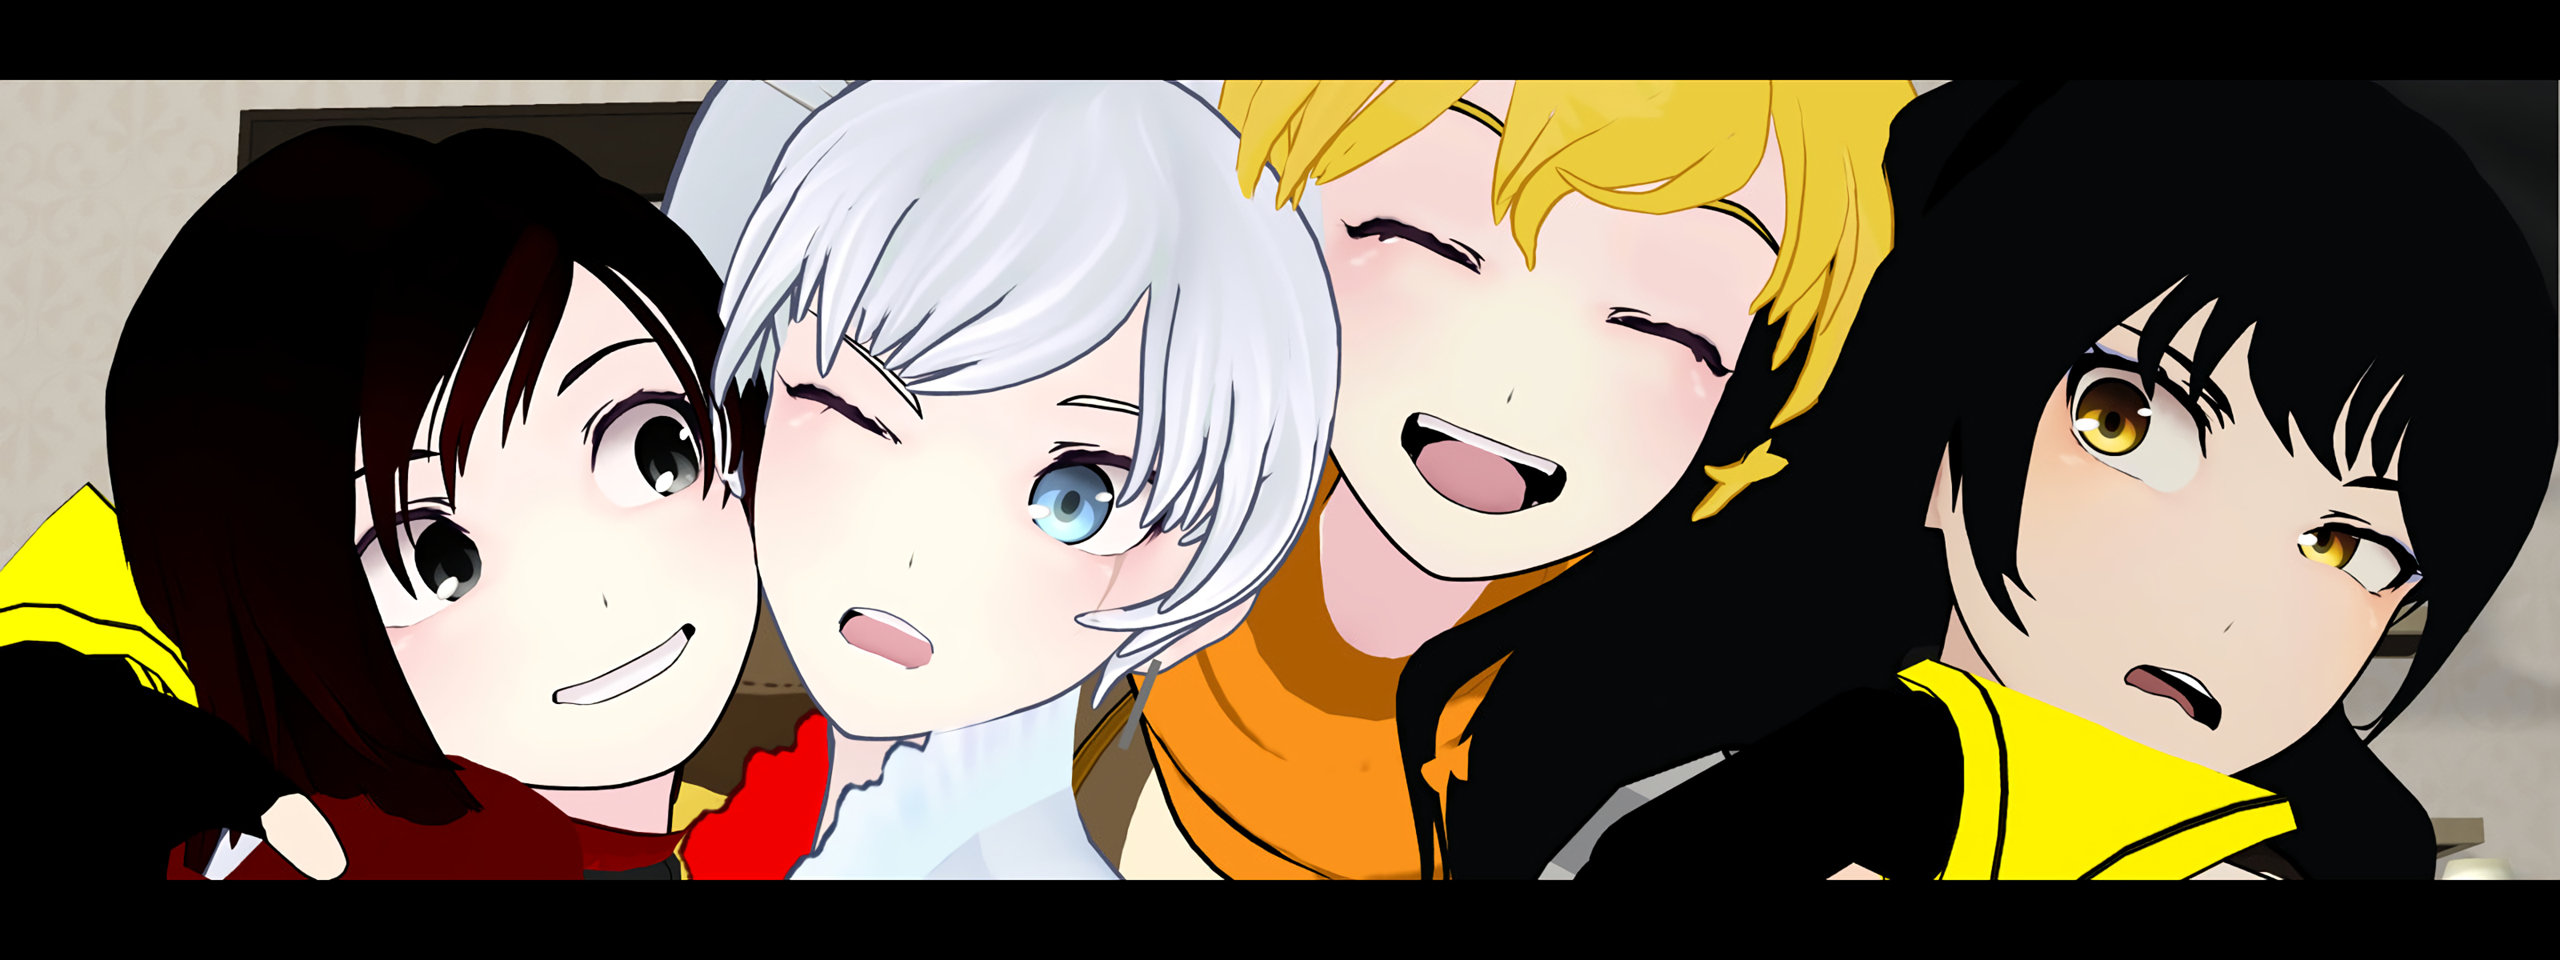 Download dual screen 2560x960 RWBY desktop background ID:437604 for free